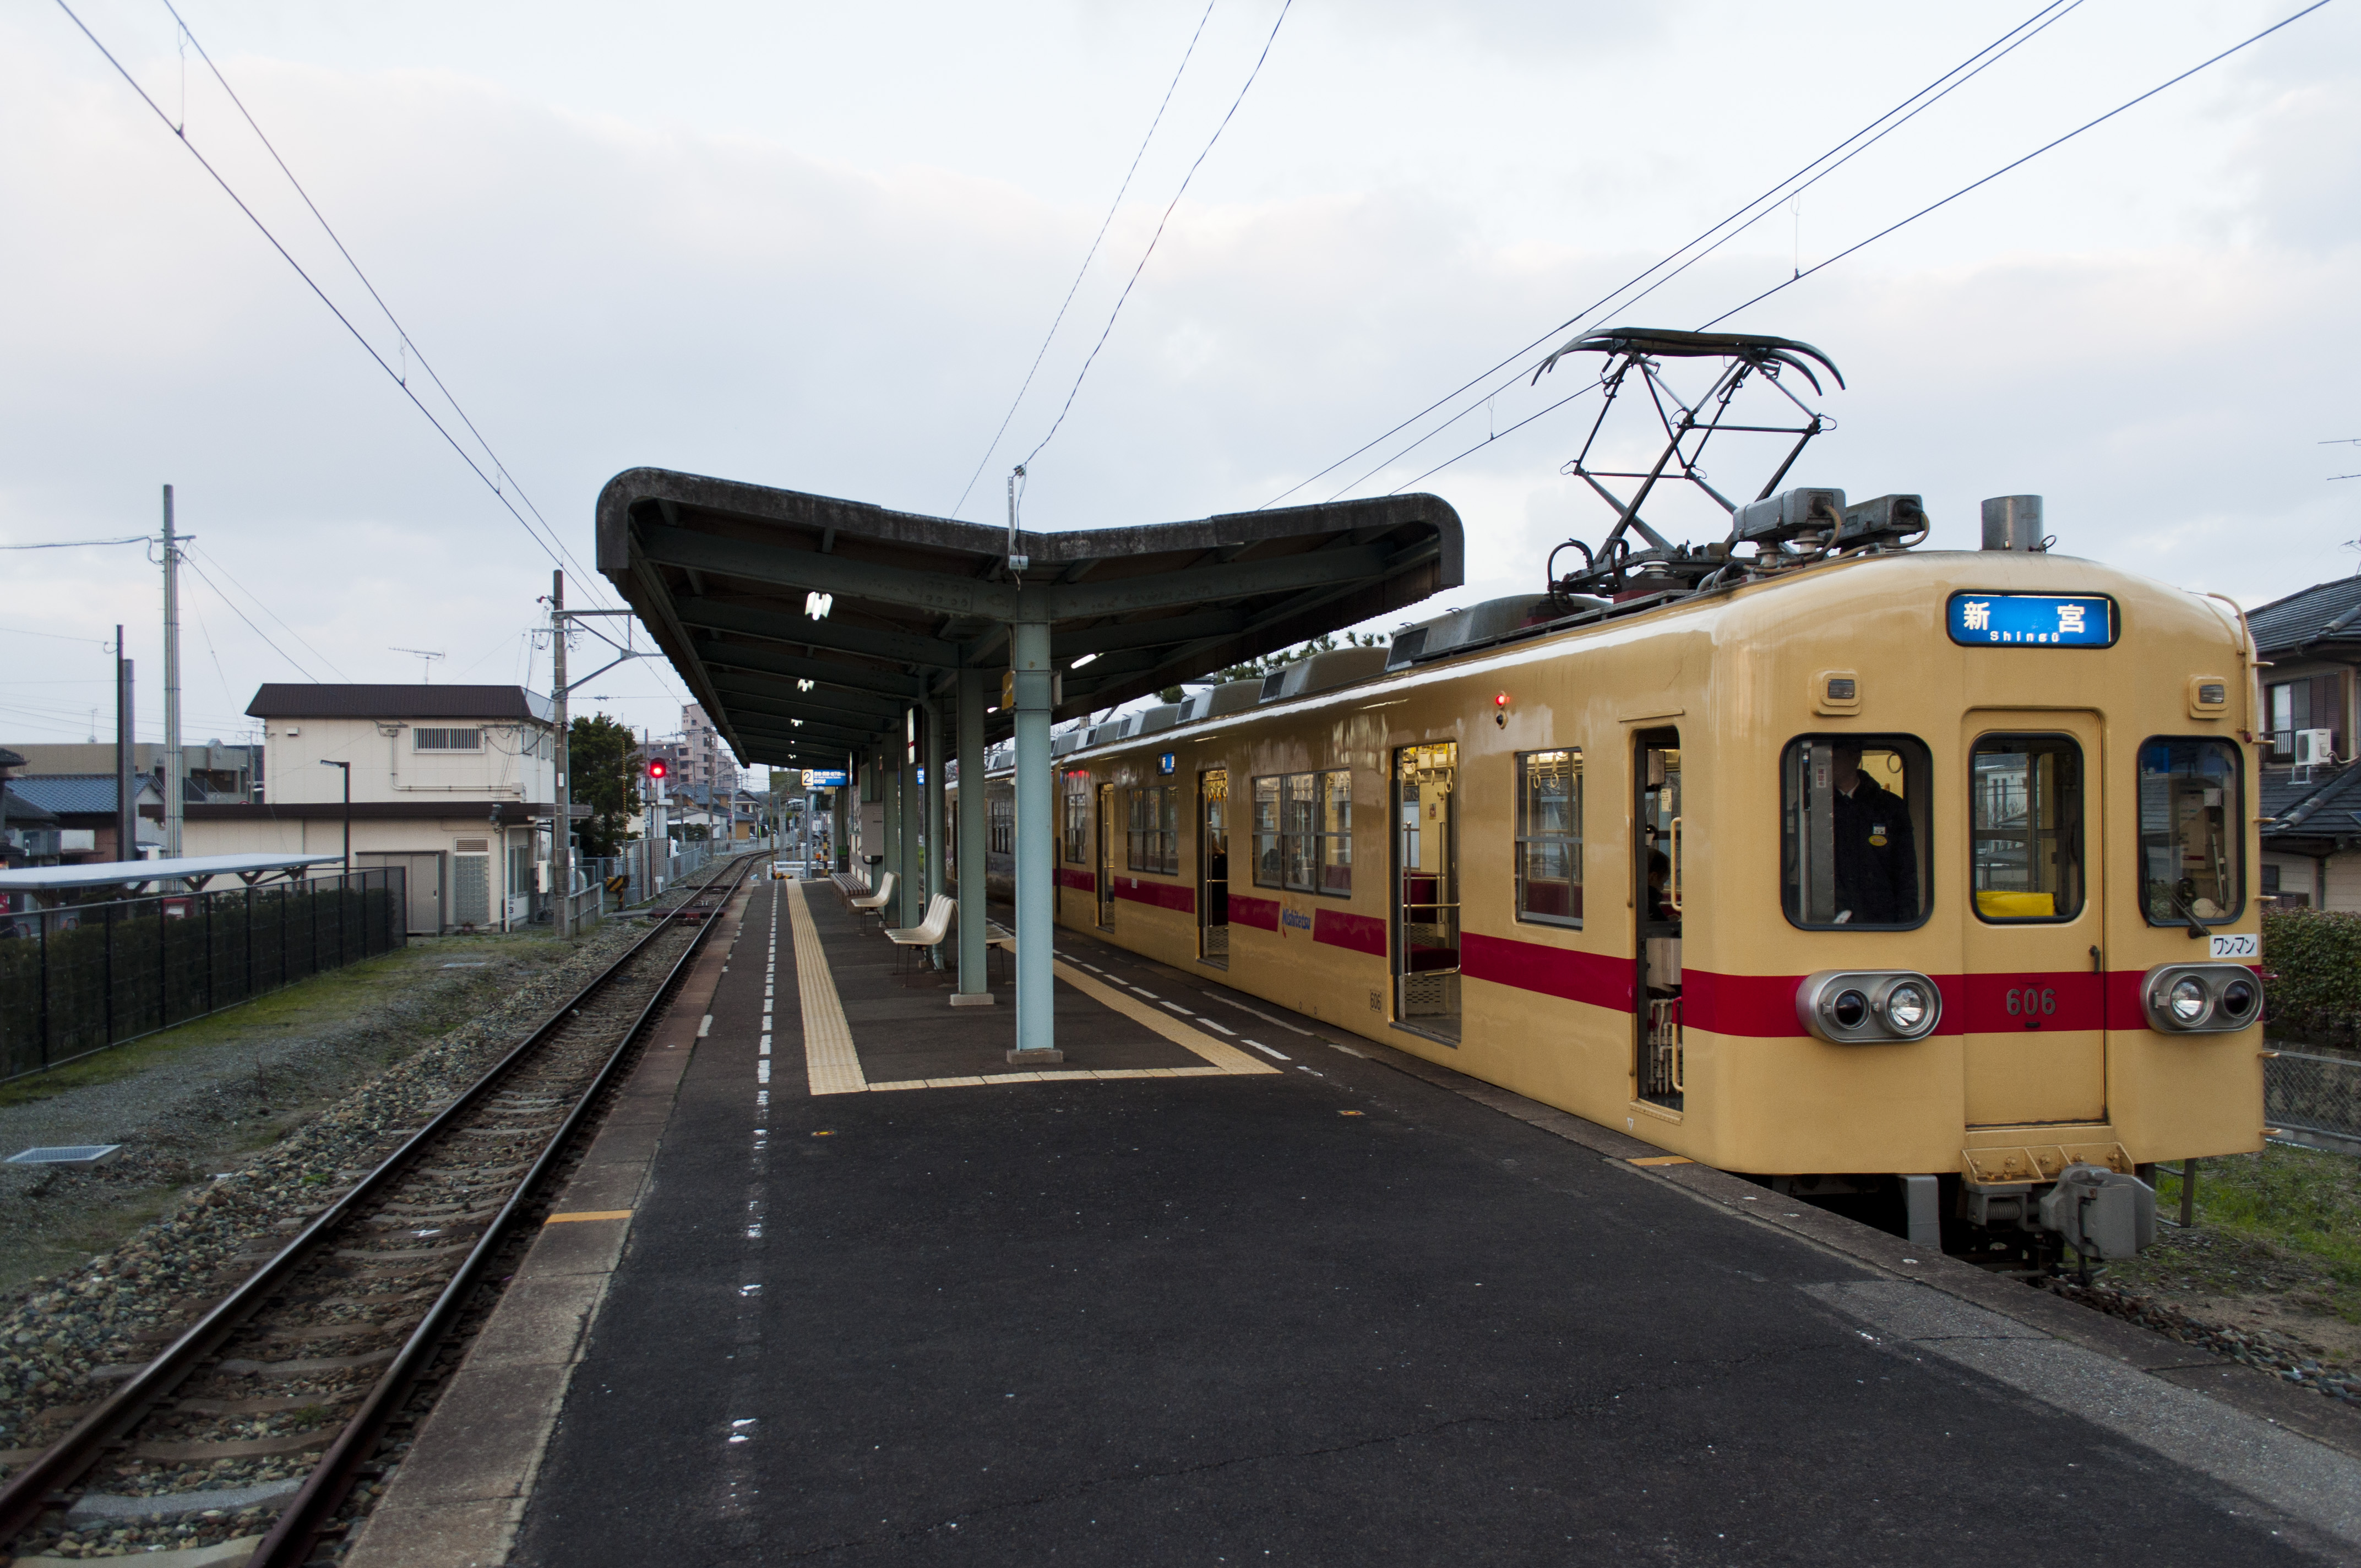 https://upload.wikimedia.org/wikipedia/commons/7/7b/Nishitetsu_Shingu_Station_Platform.jpg